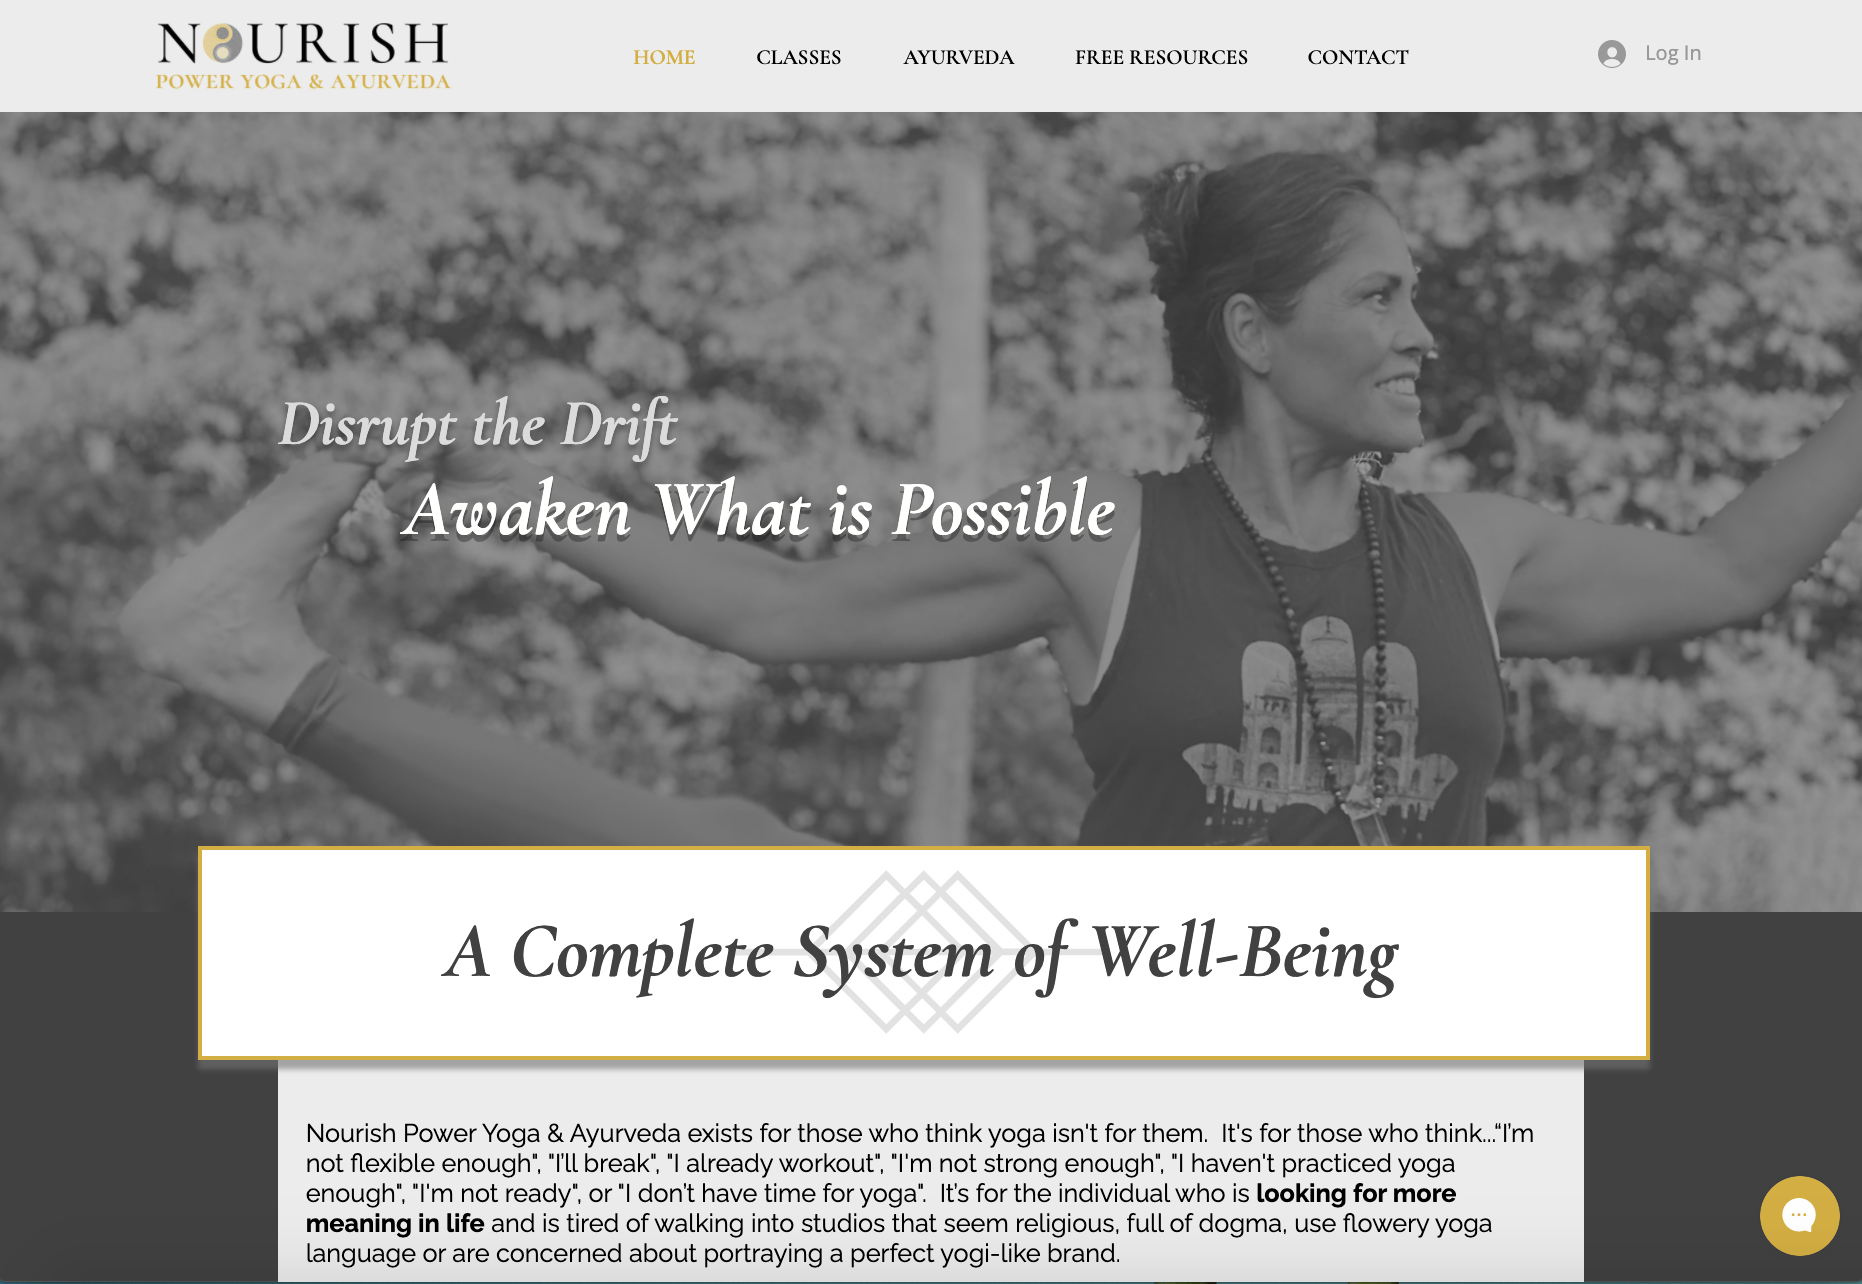 Nourish Power Yoga & Ayurveda (Wix)